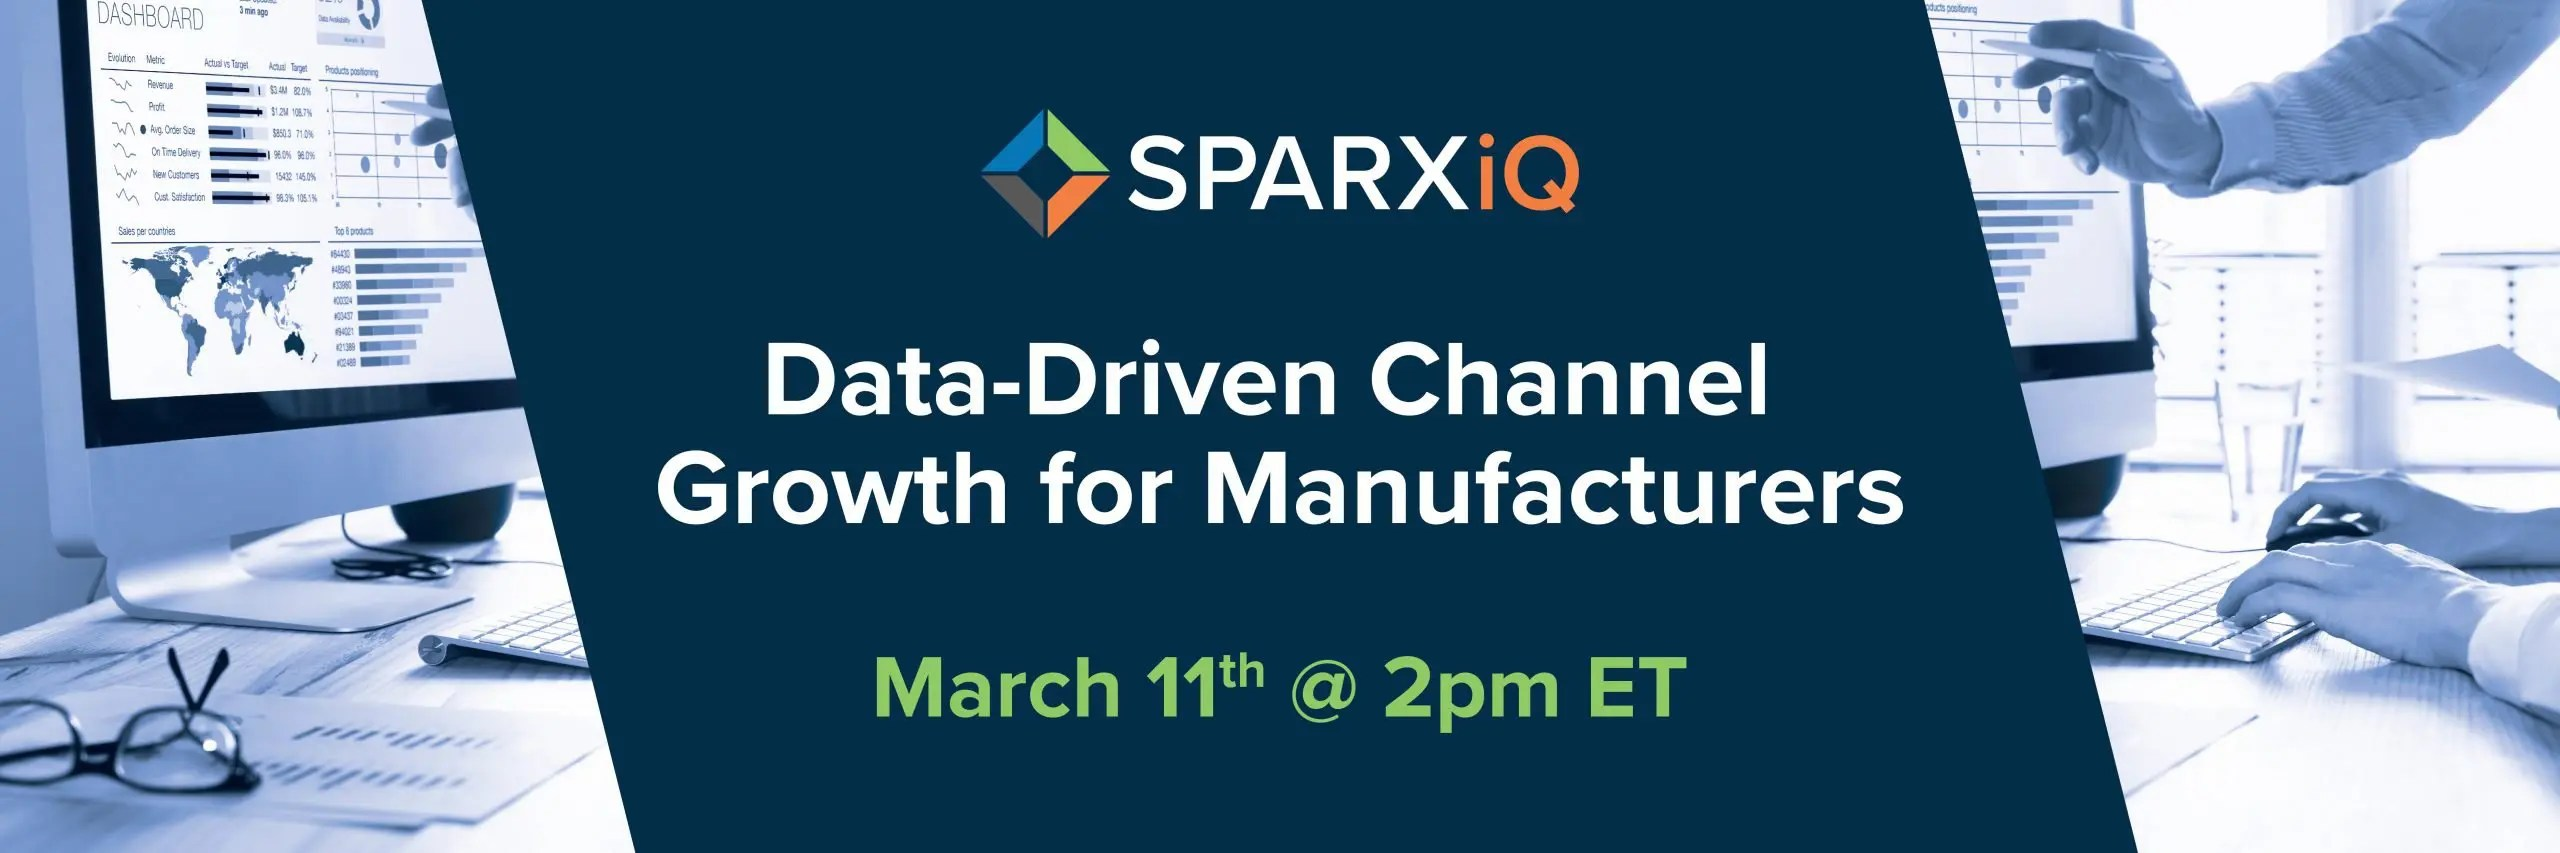 sparxiq channel management data